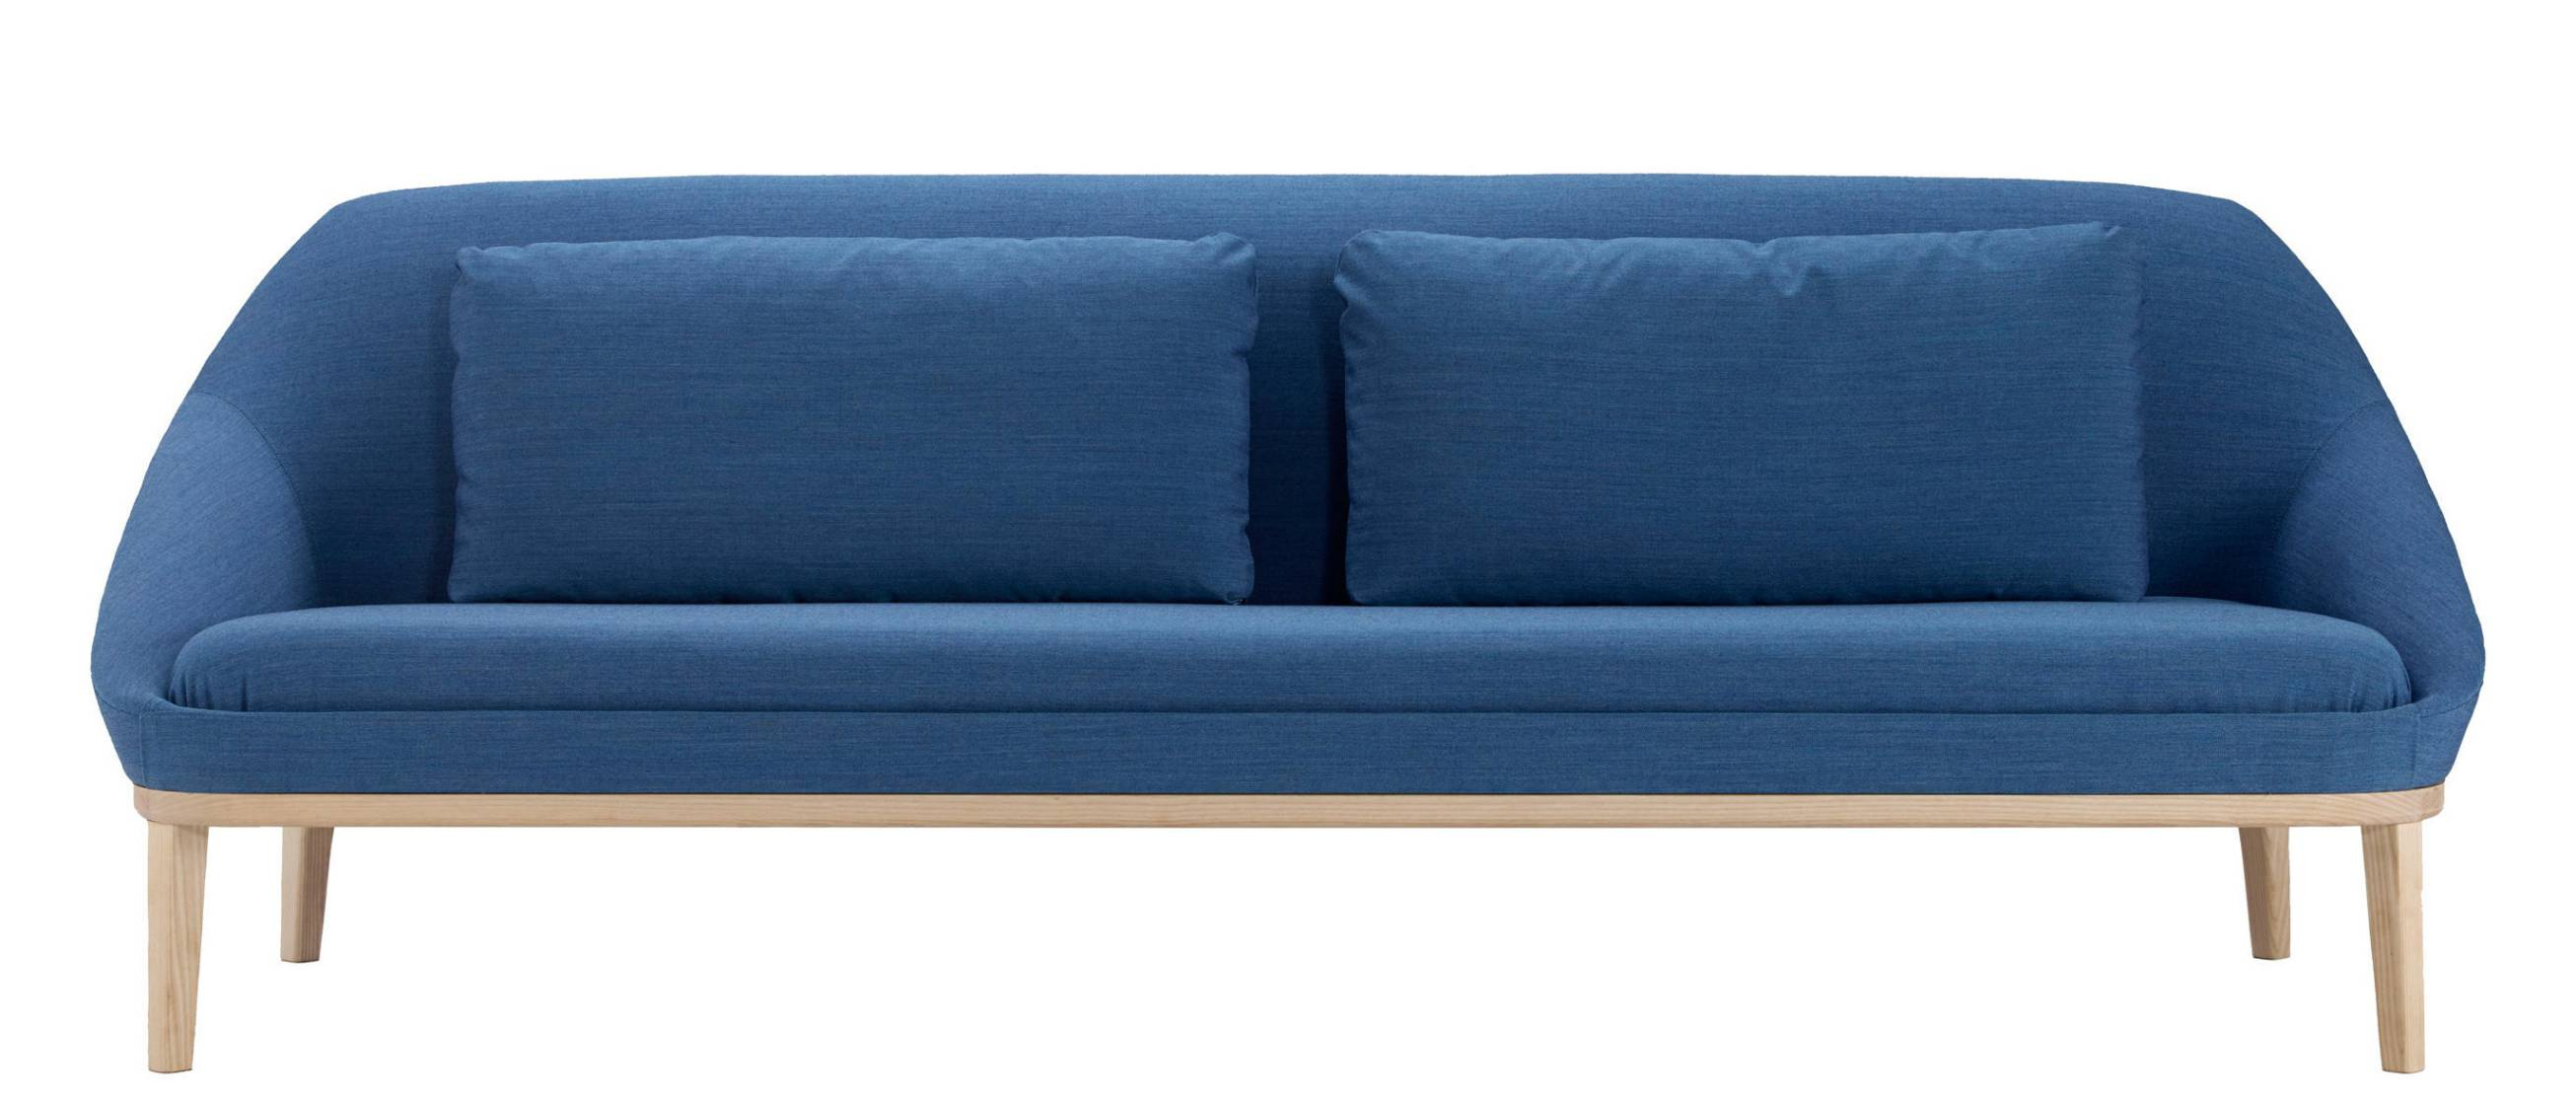 Offecct Ezy Wood Sofa